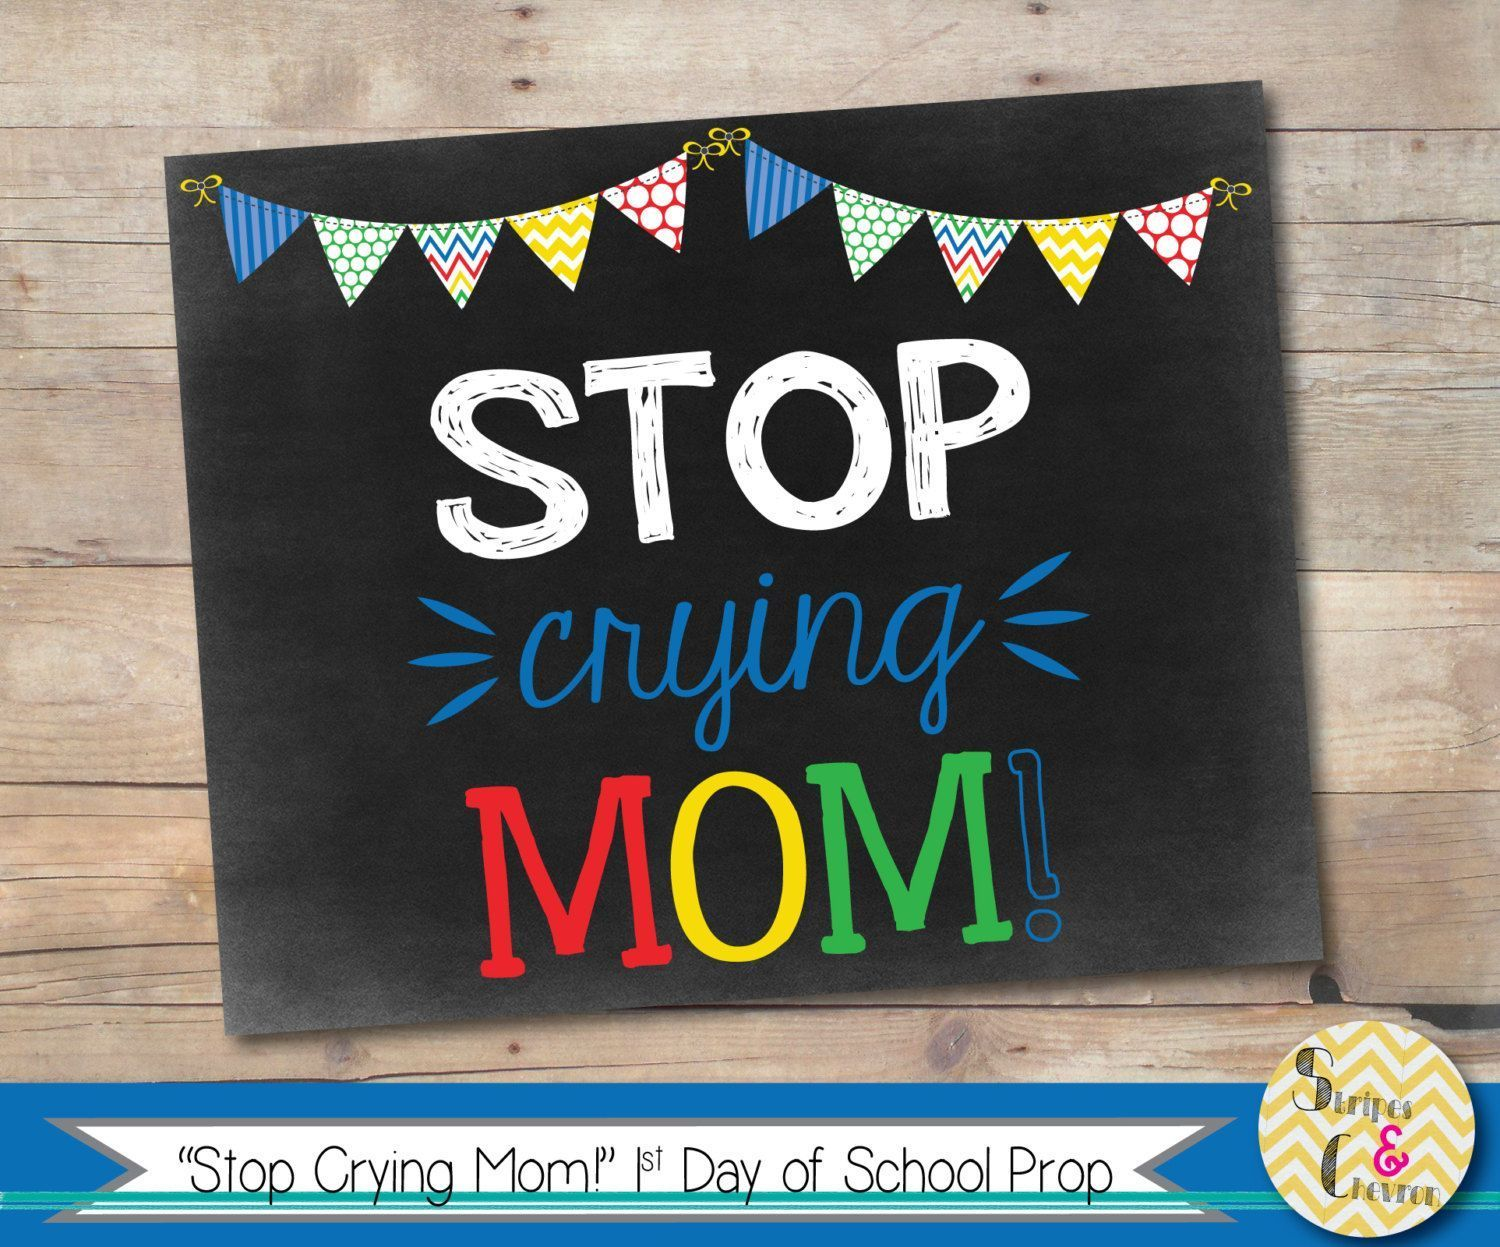 Stop Crying Mom First Day of School Sign, 1st Day Last Day of Kindergarten Chalkboard, Don't Cry Mom Printable, Funny Back to School Picture #firstdayofschooloutfits Stop Crying Mom First Day of School Sign 1st Day Last Day of #firstdayofschooloutfits Stop Crying Mom First Day of School Sign, 1st Day Last Day of Kindergarten Chalkboard, Don't Cry Mom Printable, Funny Back to School Picture #firstdayofschooloutfits Stop Crying Mom First Day of School Sign 1st Day Last Day of #firstdayofschooloutfits